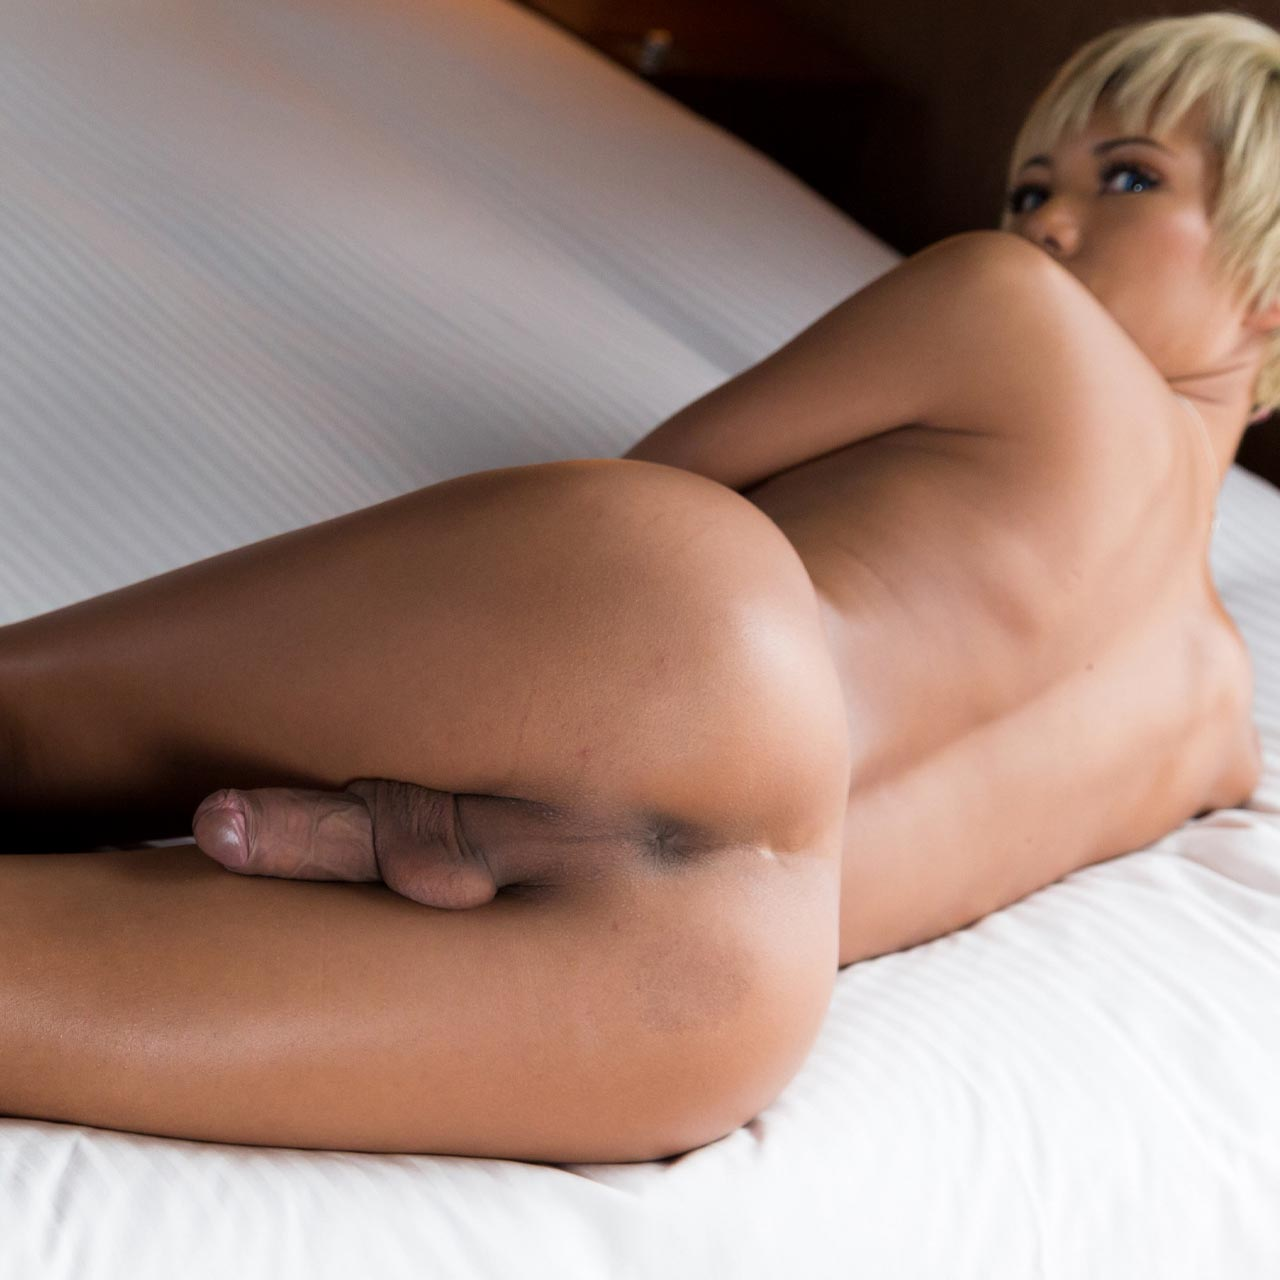 Transex Japan, SheMale NewHalf porn uncensored TransGender Sex videos. Nude Japanese Girls with beautiful cocks.